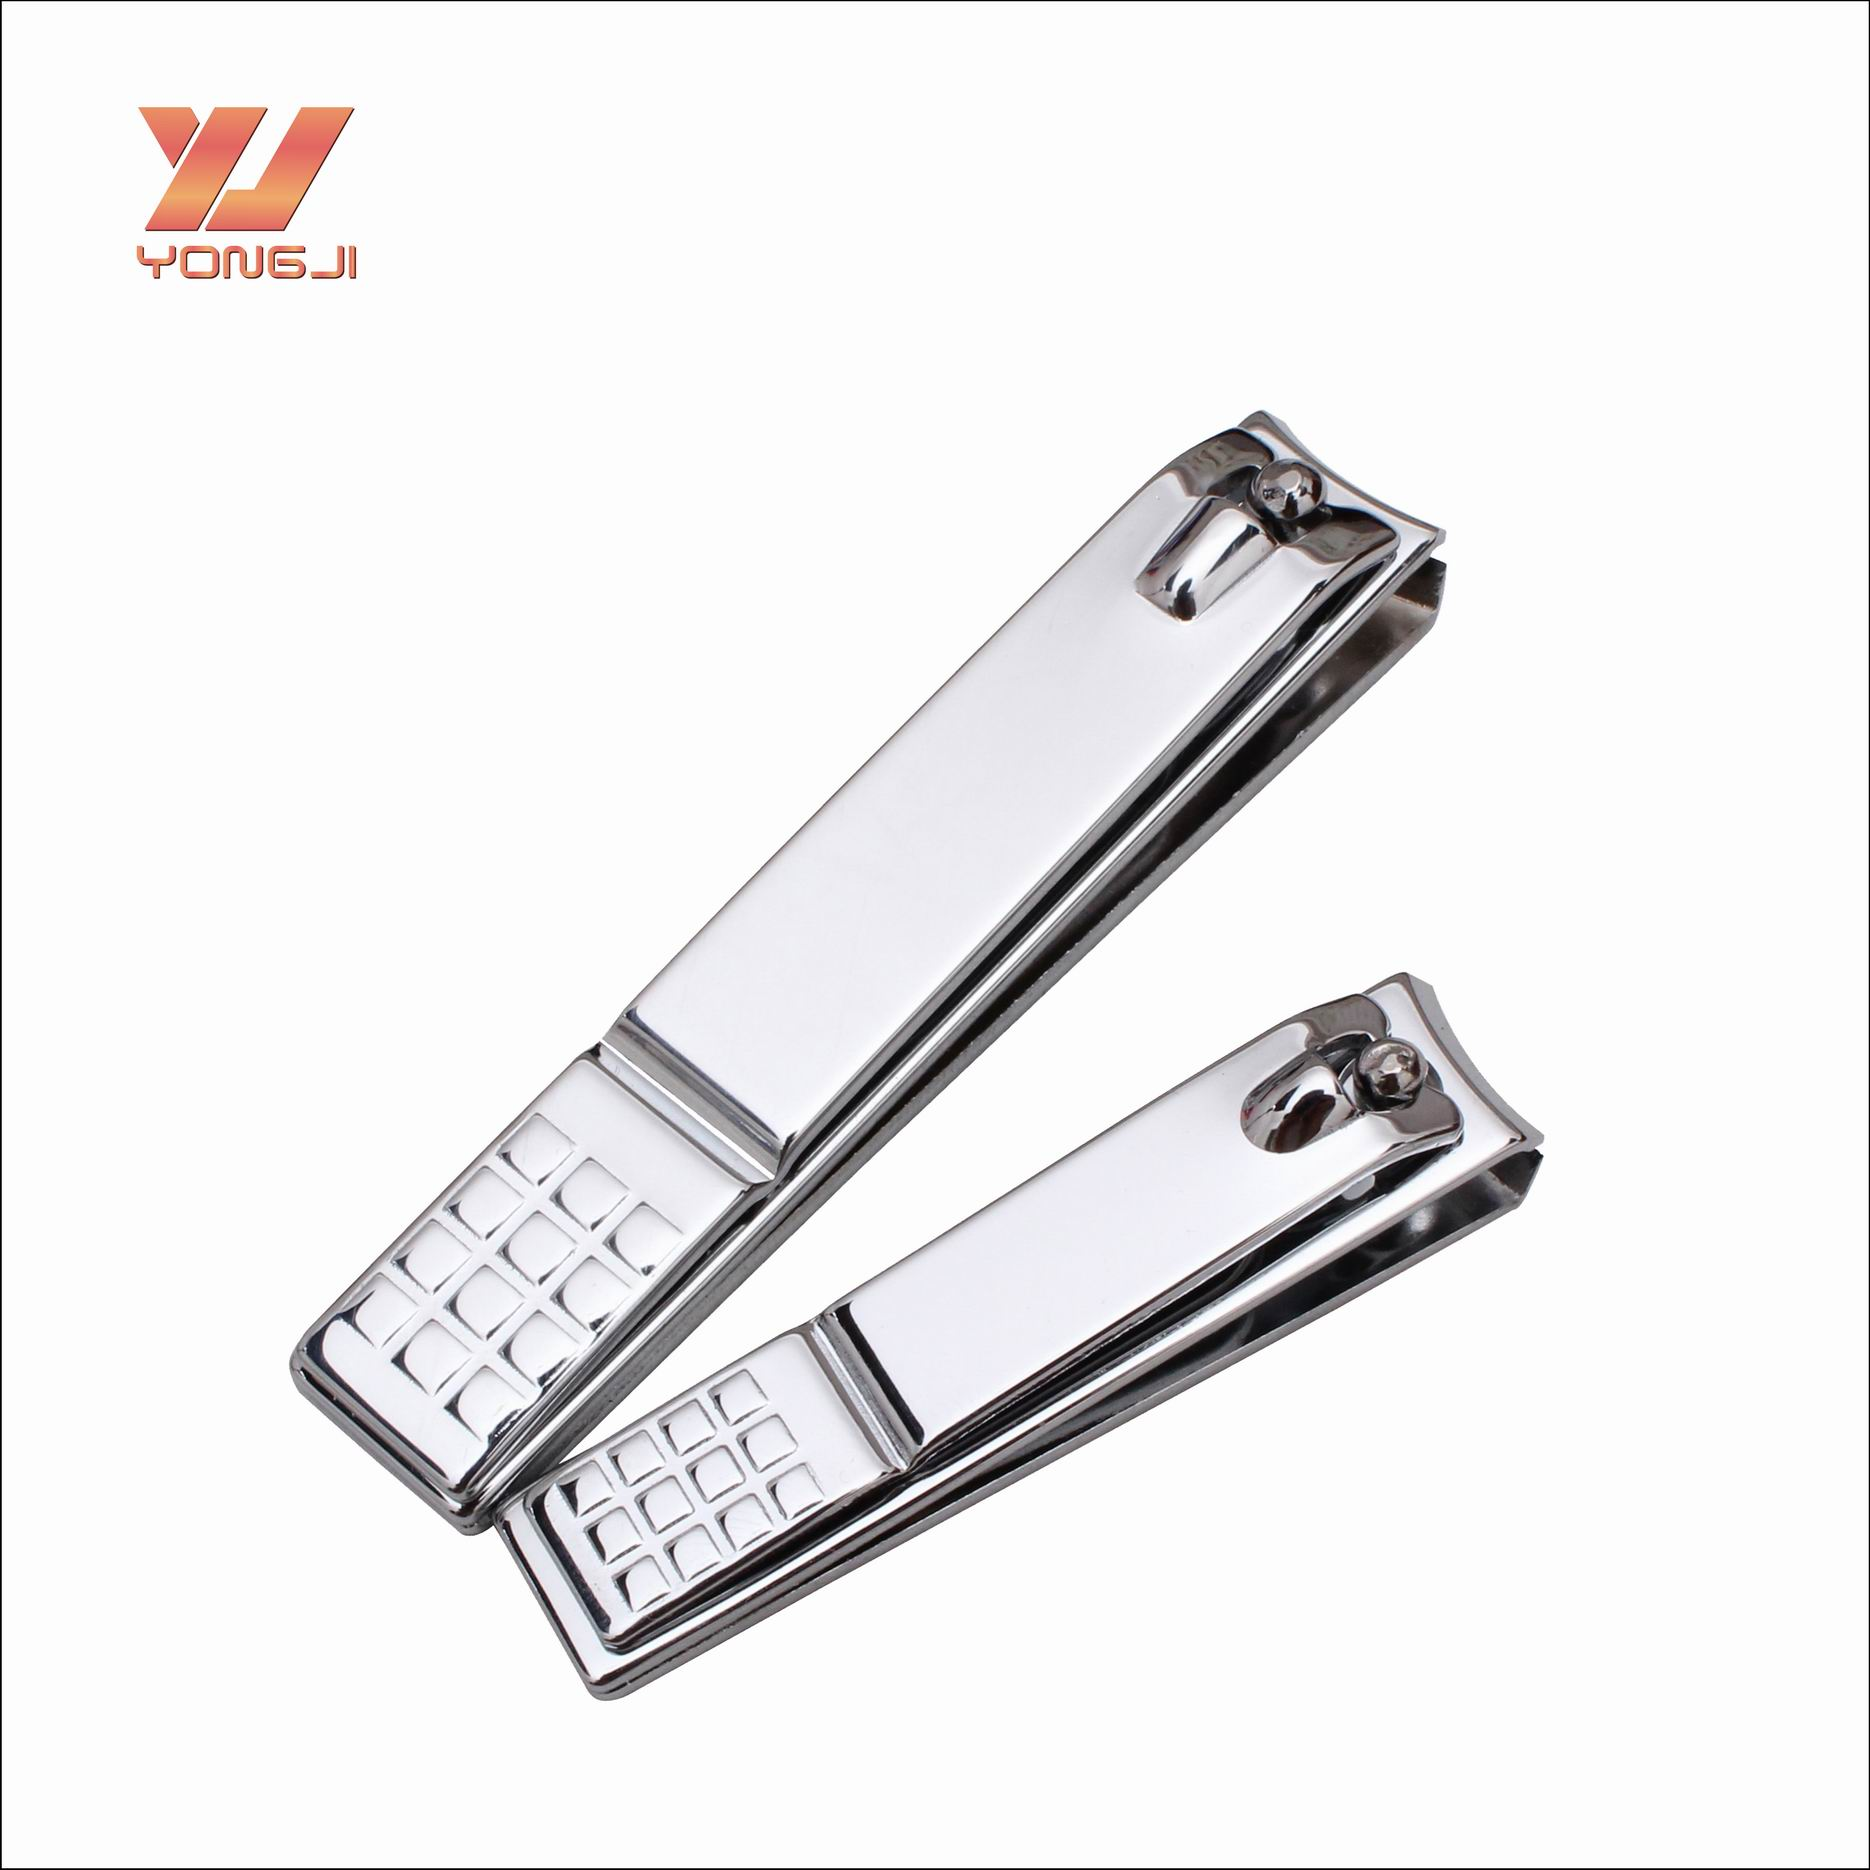 Long Toenail Clippers, Long Toenail Clippers Suppliers and ...